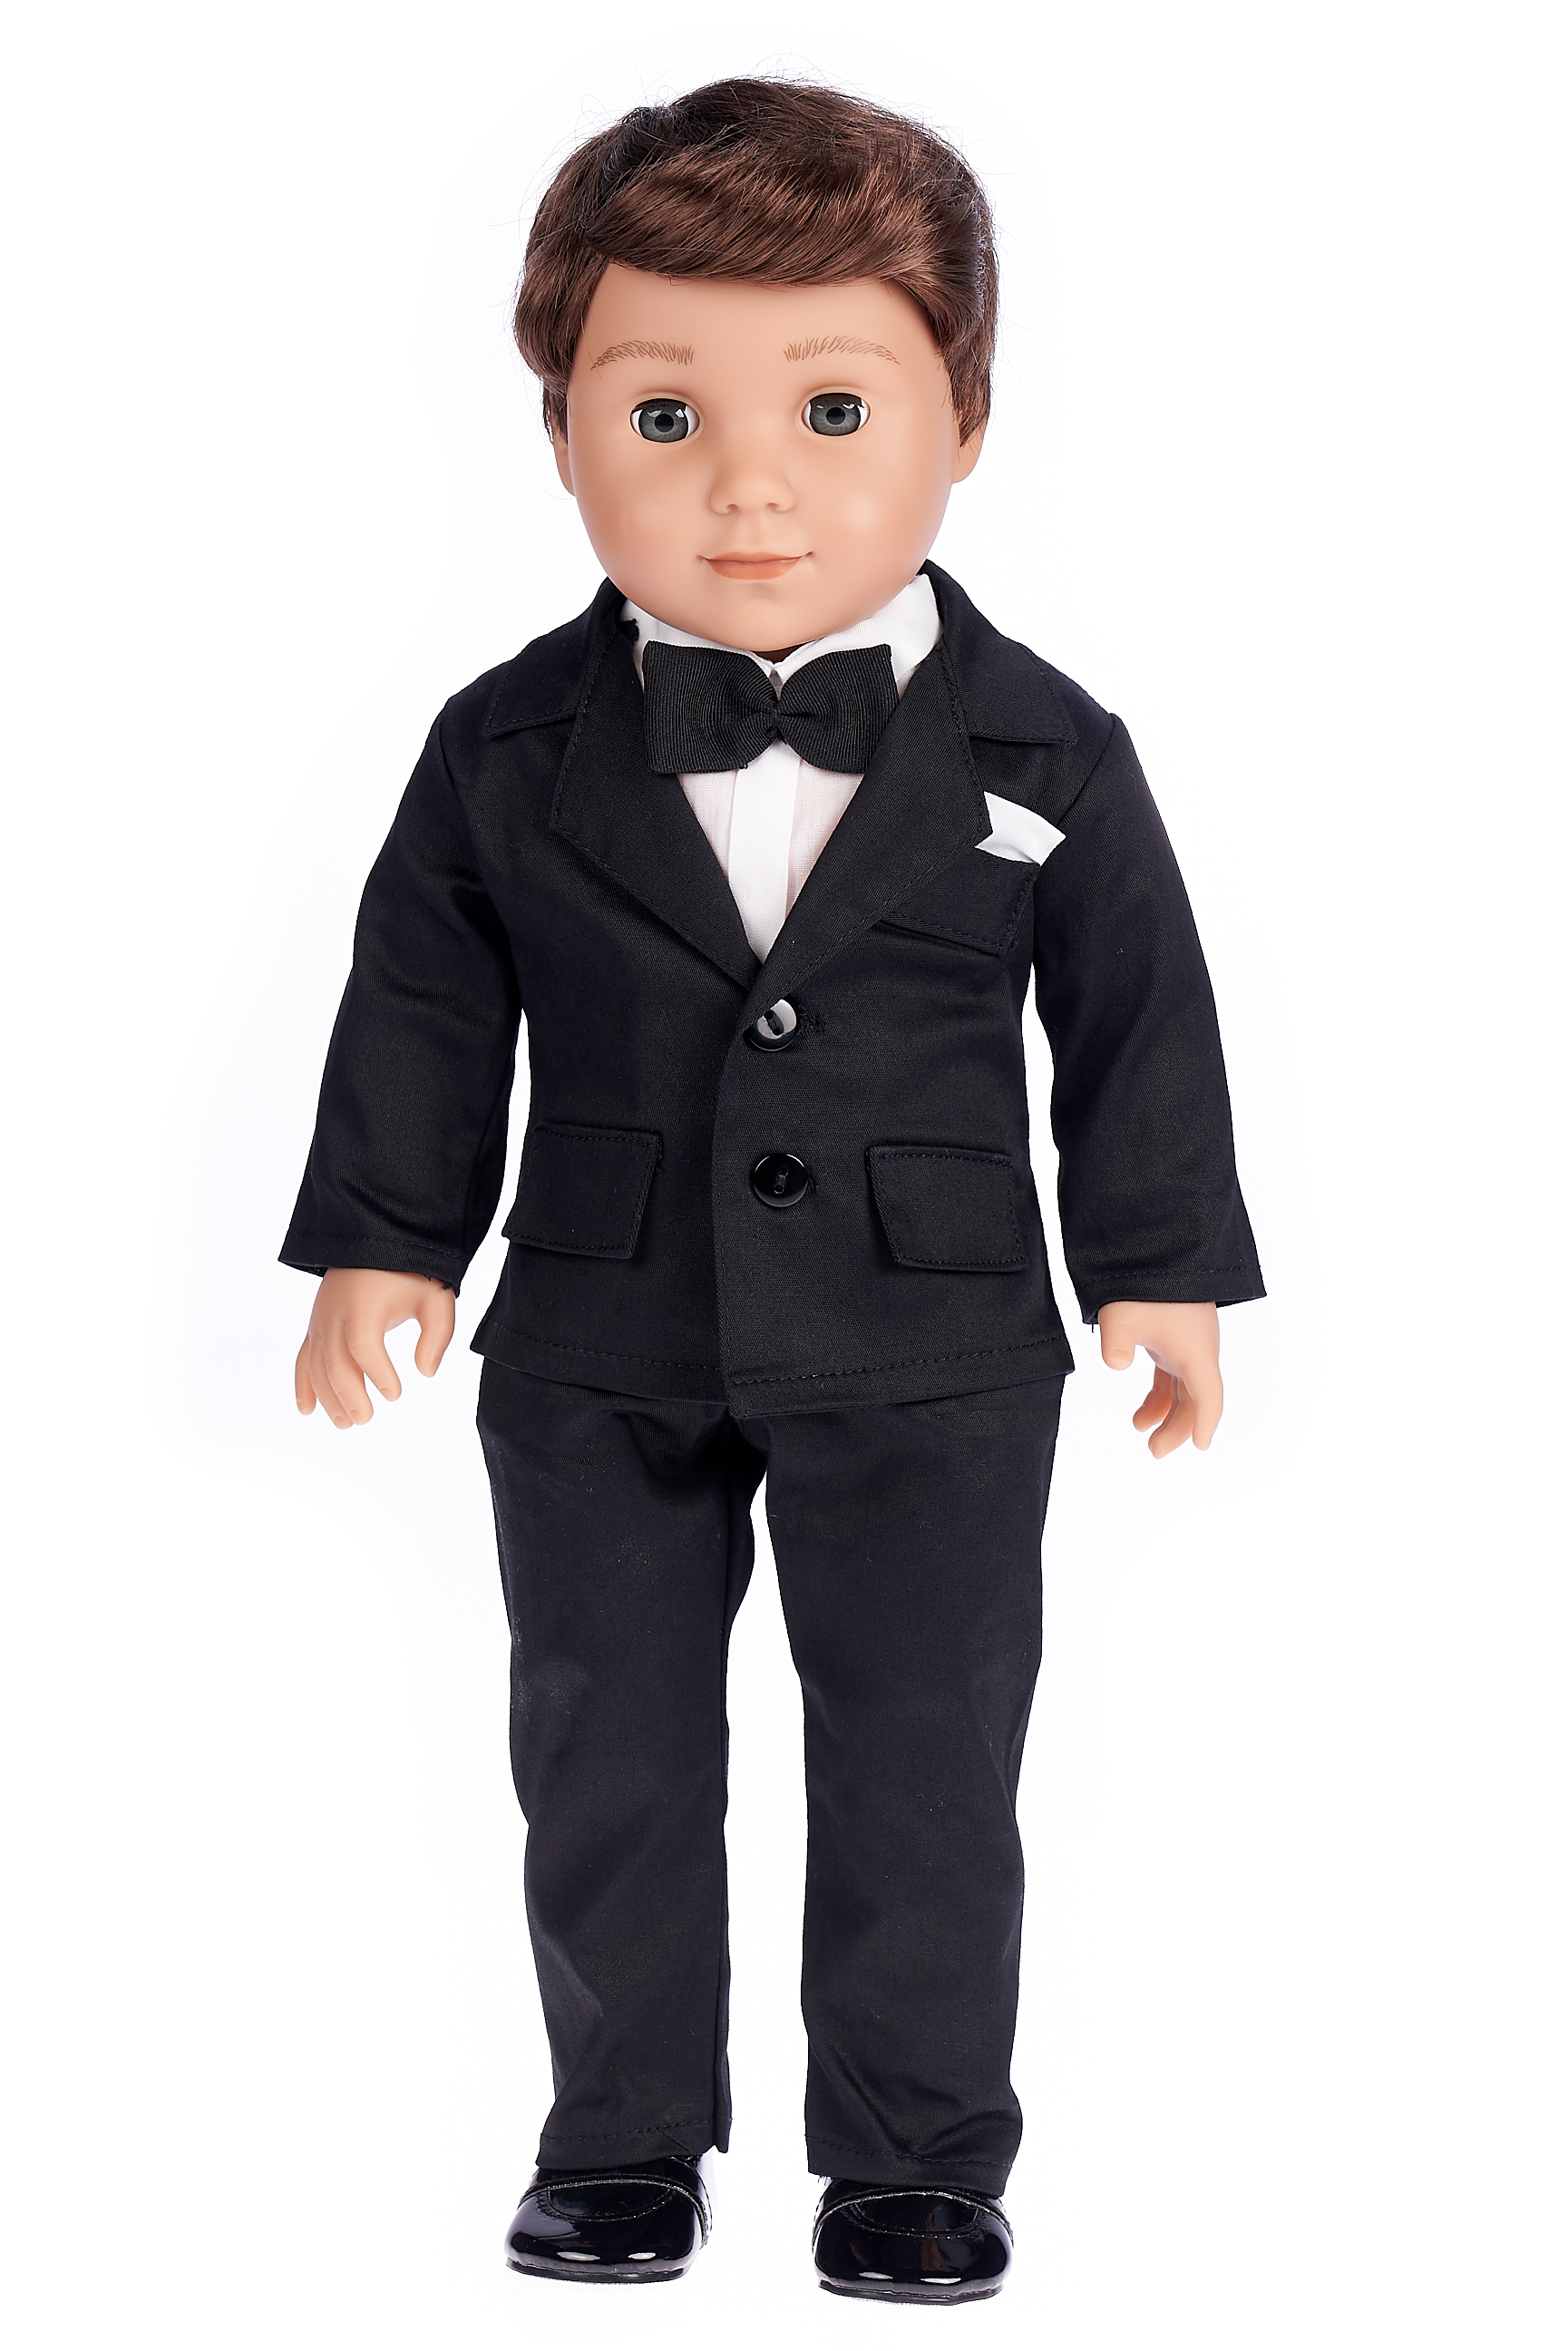 Tuxedo-5-Piece-Doll-Set-Clothes-Fits-18-inch-American-Girl-Doll